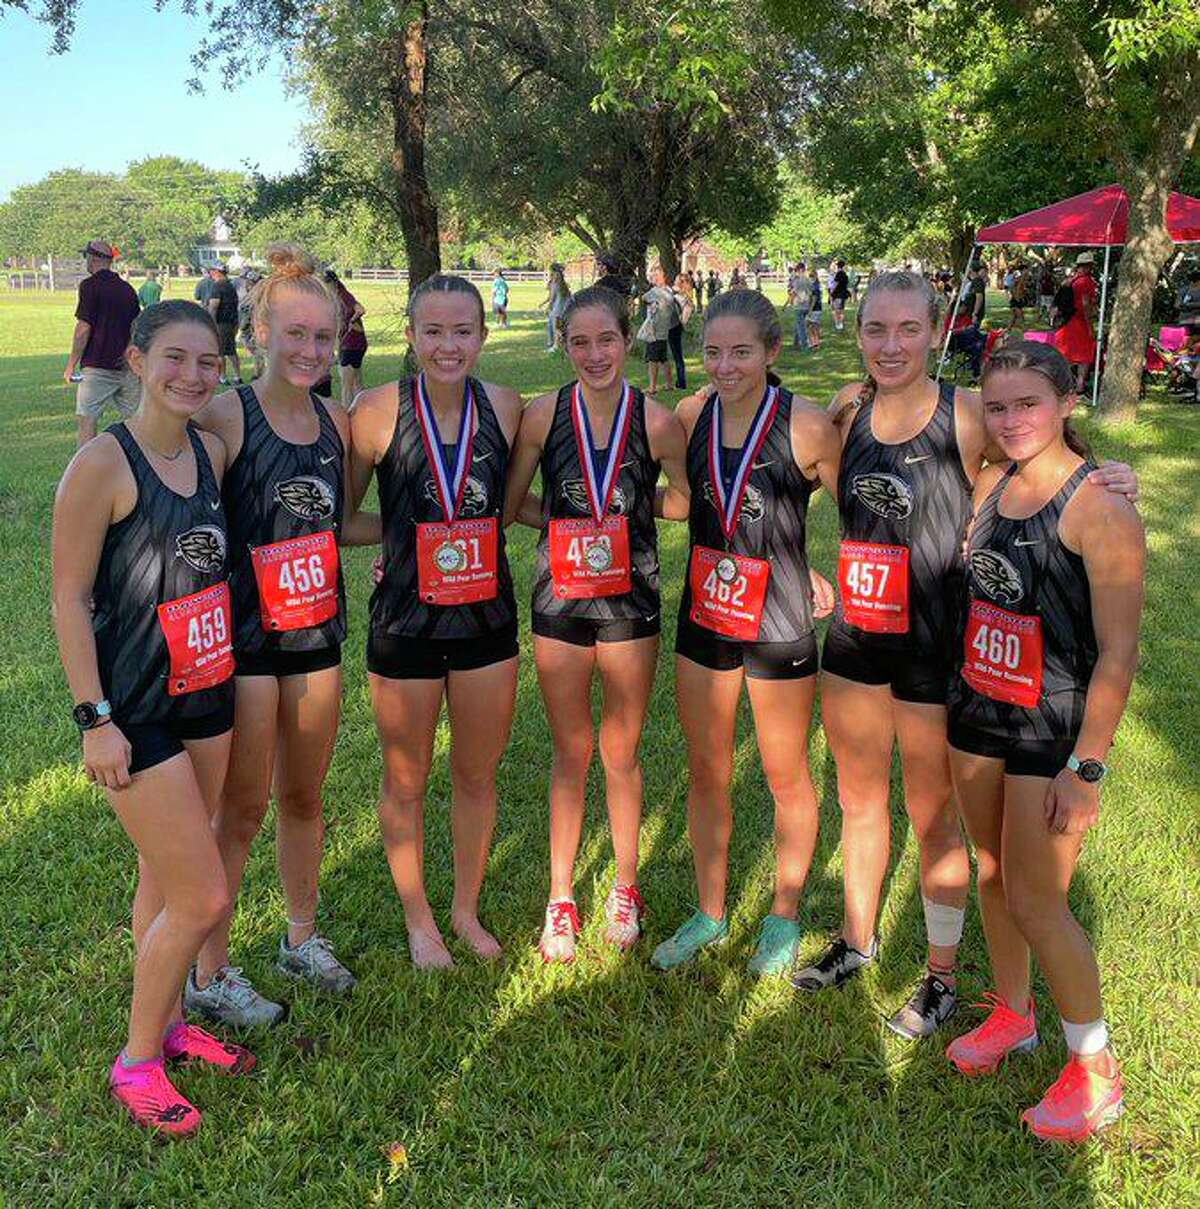 The Foster girls cross country team won the team championship to open the 2021 season Aug. 14 at the Will Sirmon Short Course meet hosted by Dawson High School.